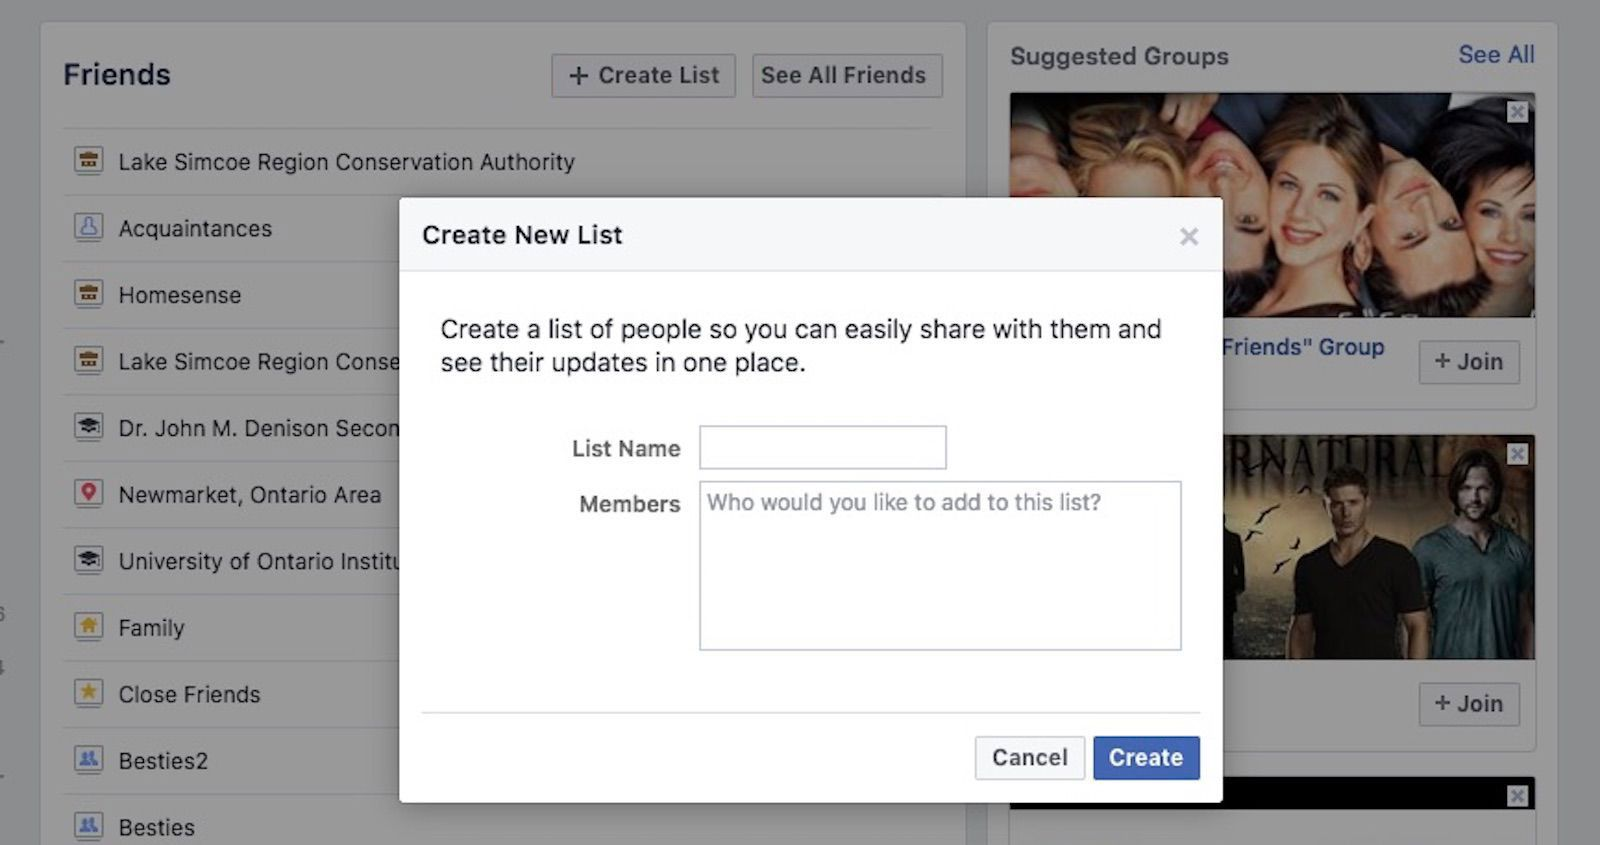 The Create New List window in Facebook